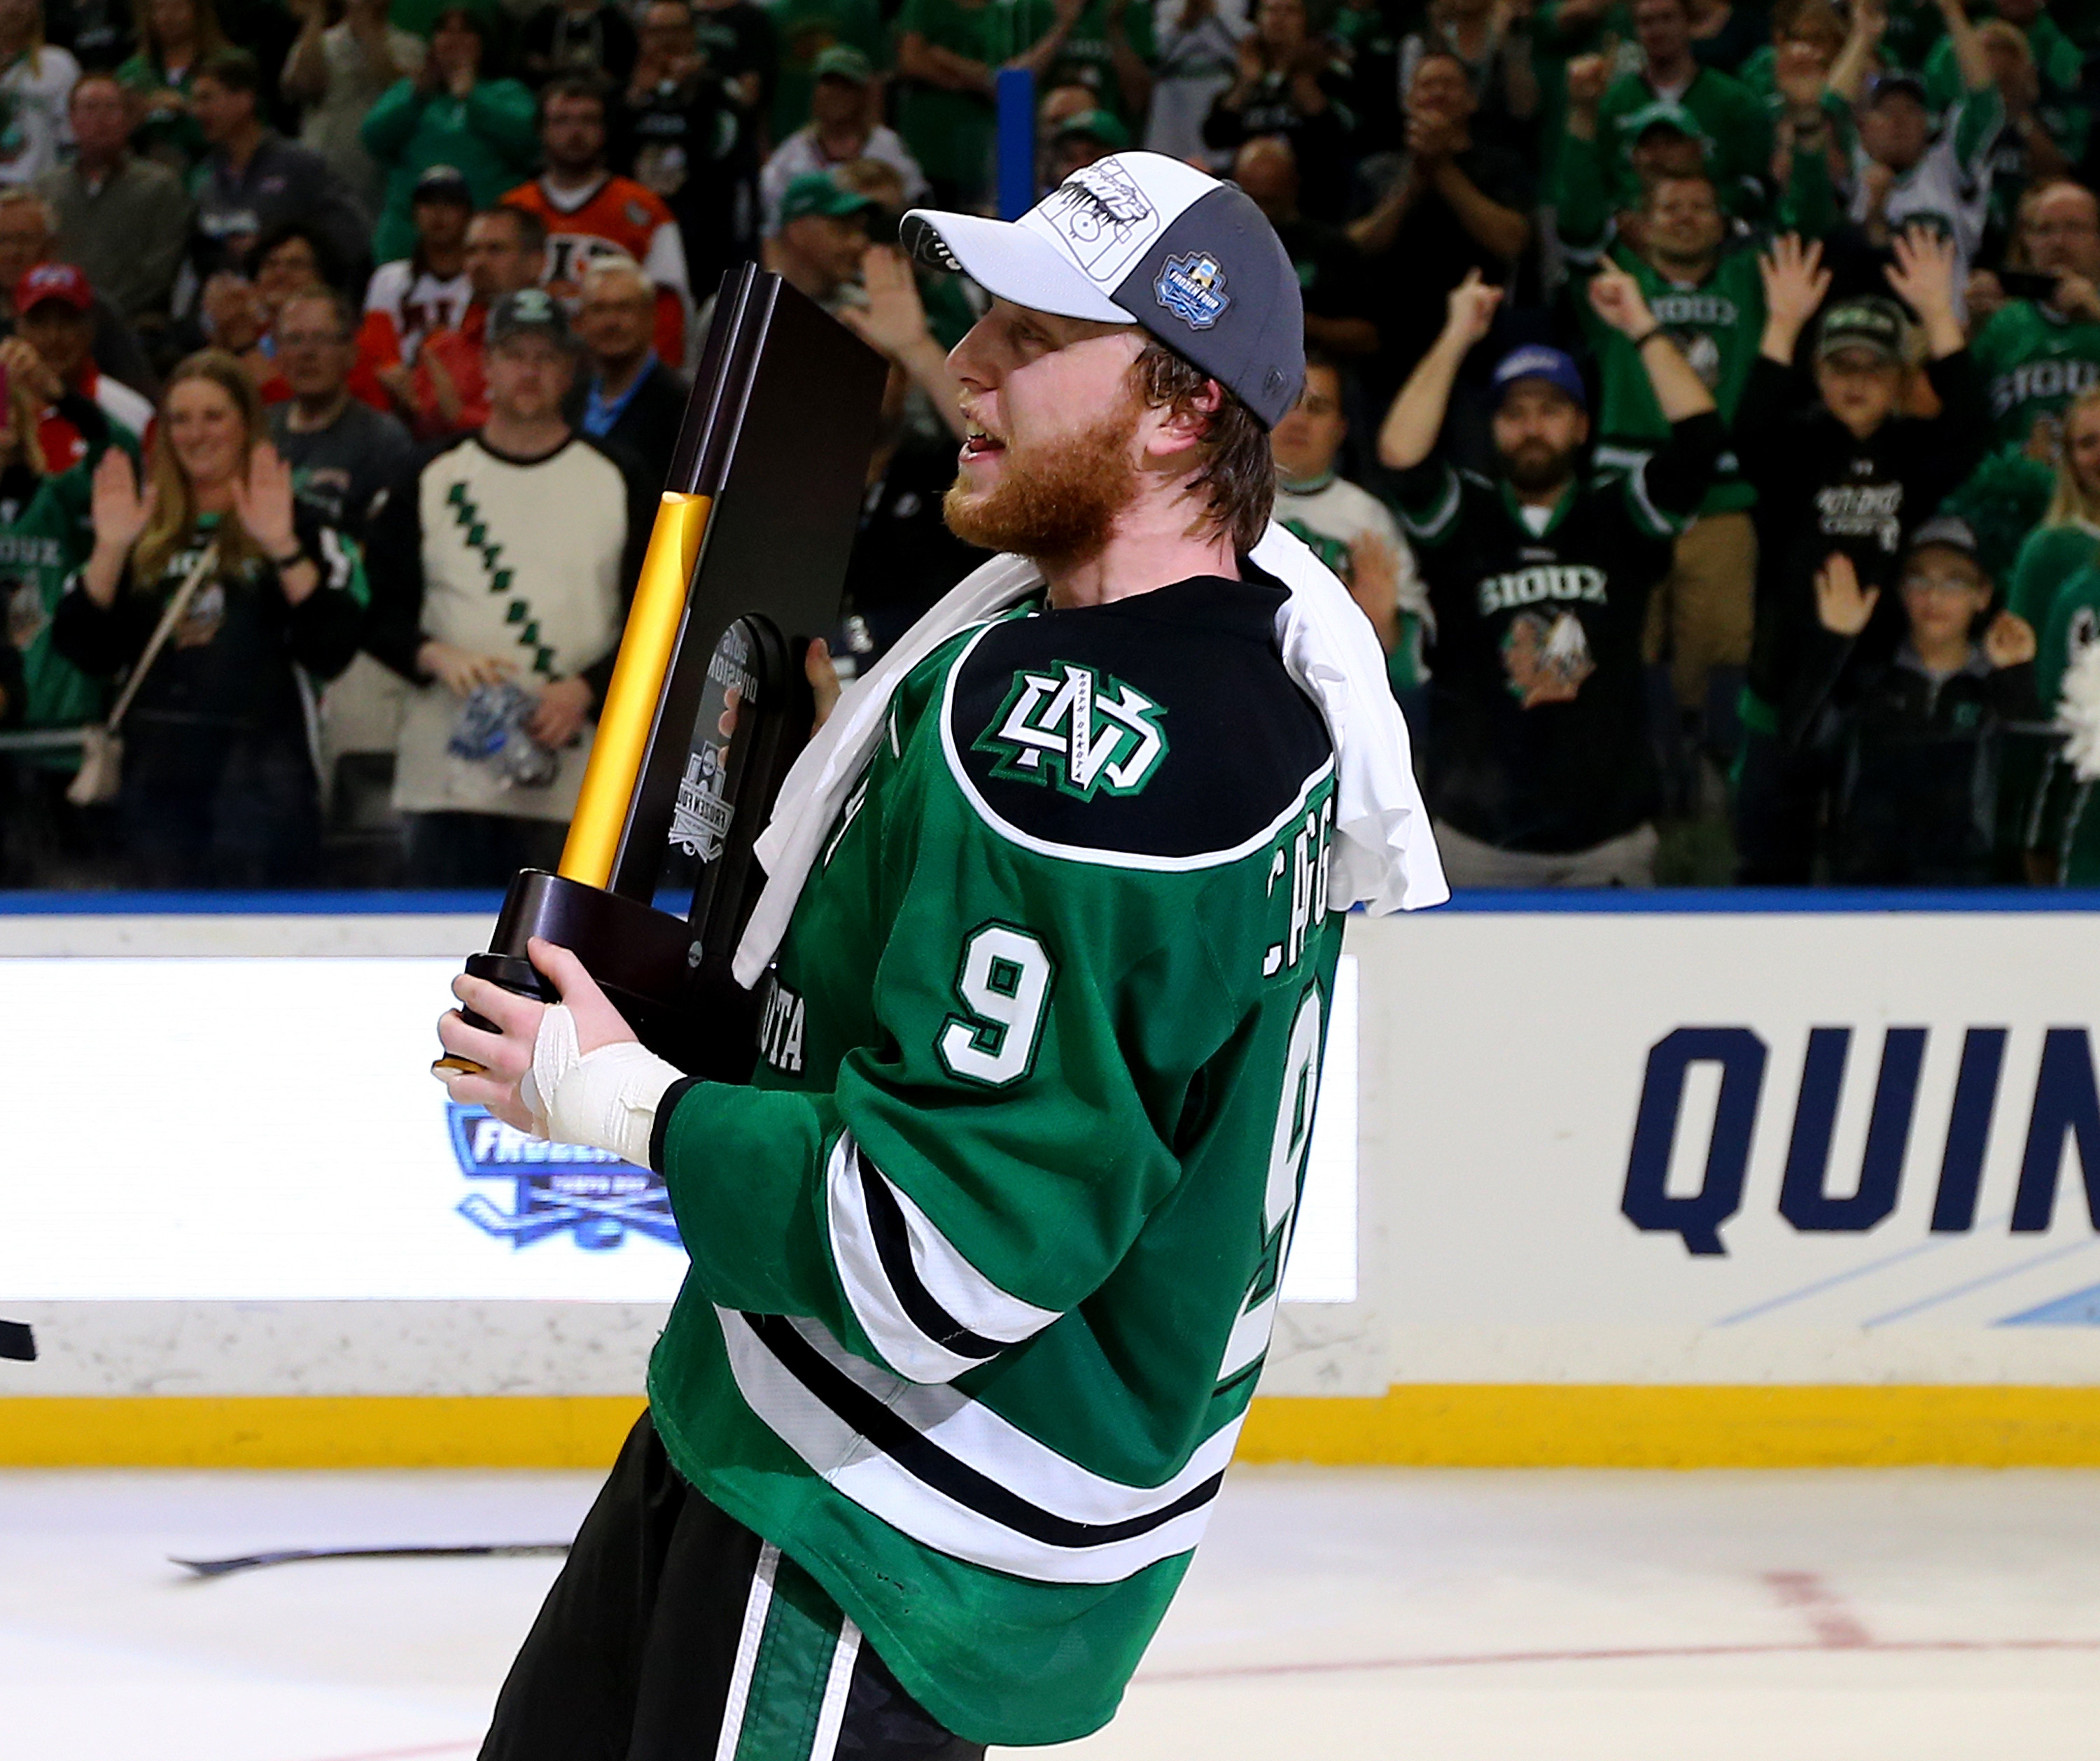 Drake Caggiula recorded 25 goals and 51 points for champion North Dakota. (Getty Images)